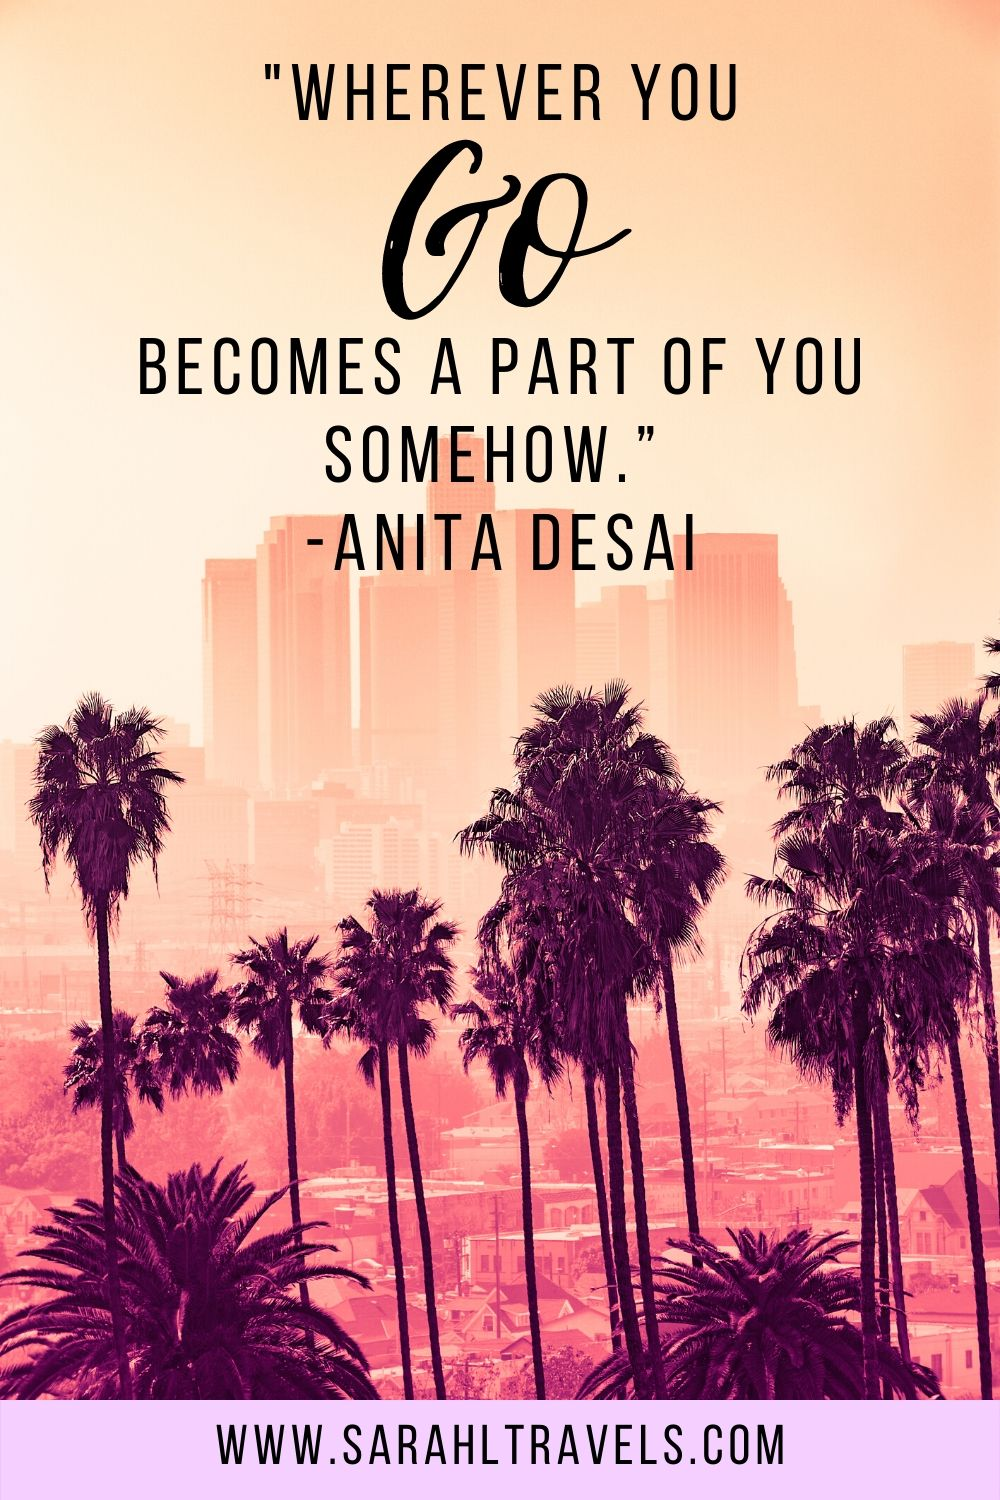 """Los Angeles with quote """"Wherever you go becomes a part of you somehow."""""""